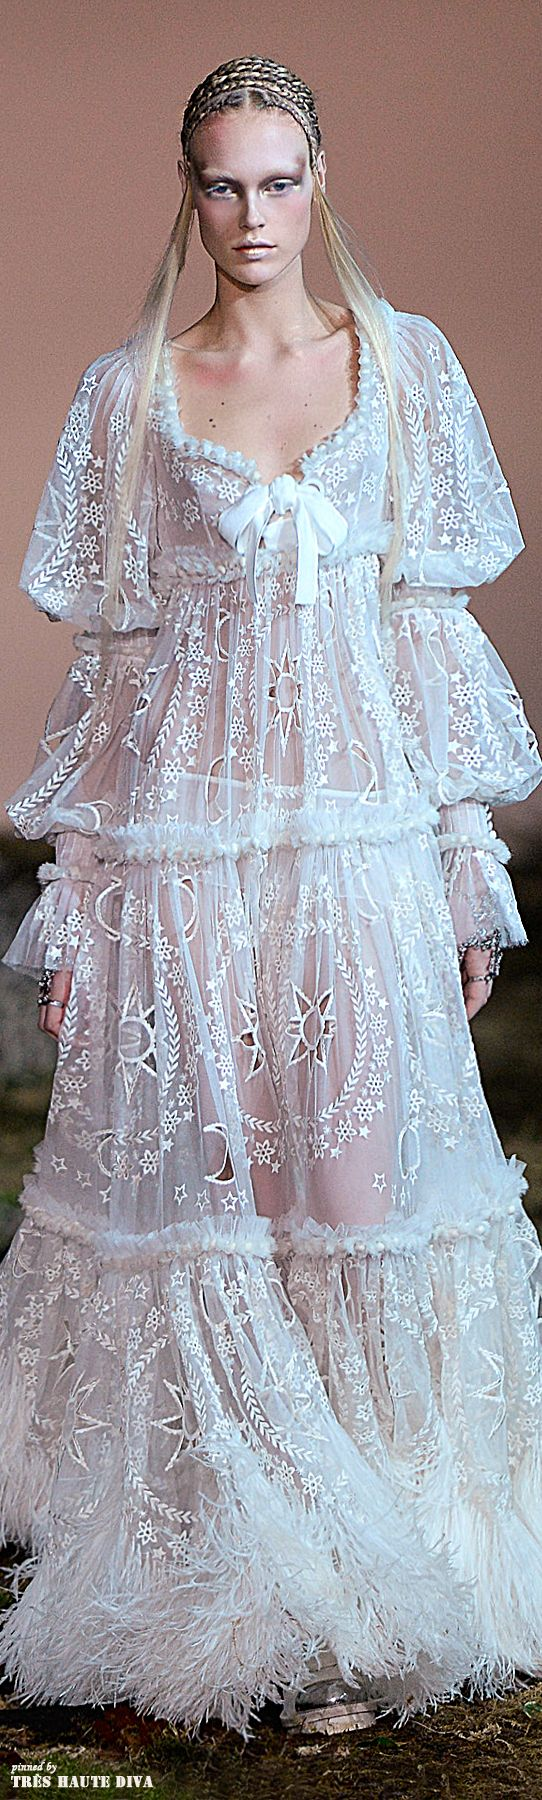 25 cute alexander mcqueen wedding dresses ideas on pinterest alexander mcqueen fallwinter 2014 rtw paris fashion week dream wedding dresseswedding junglespirit Image collections